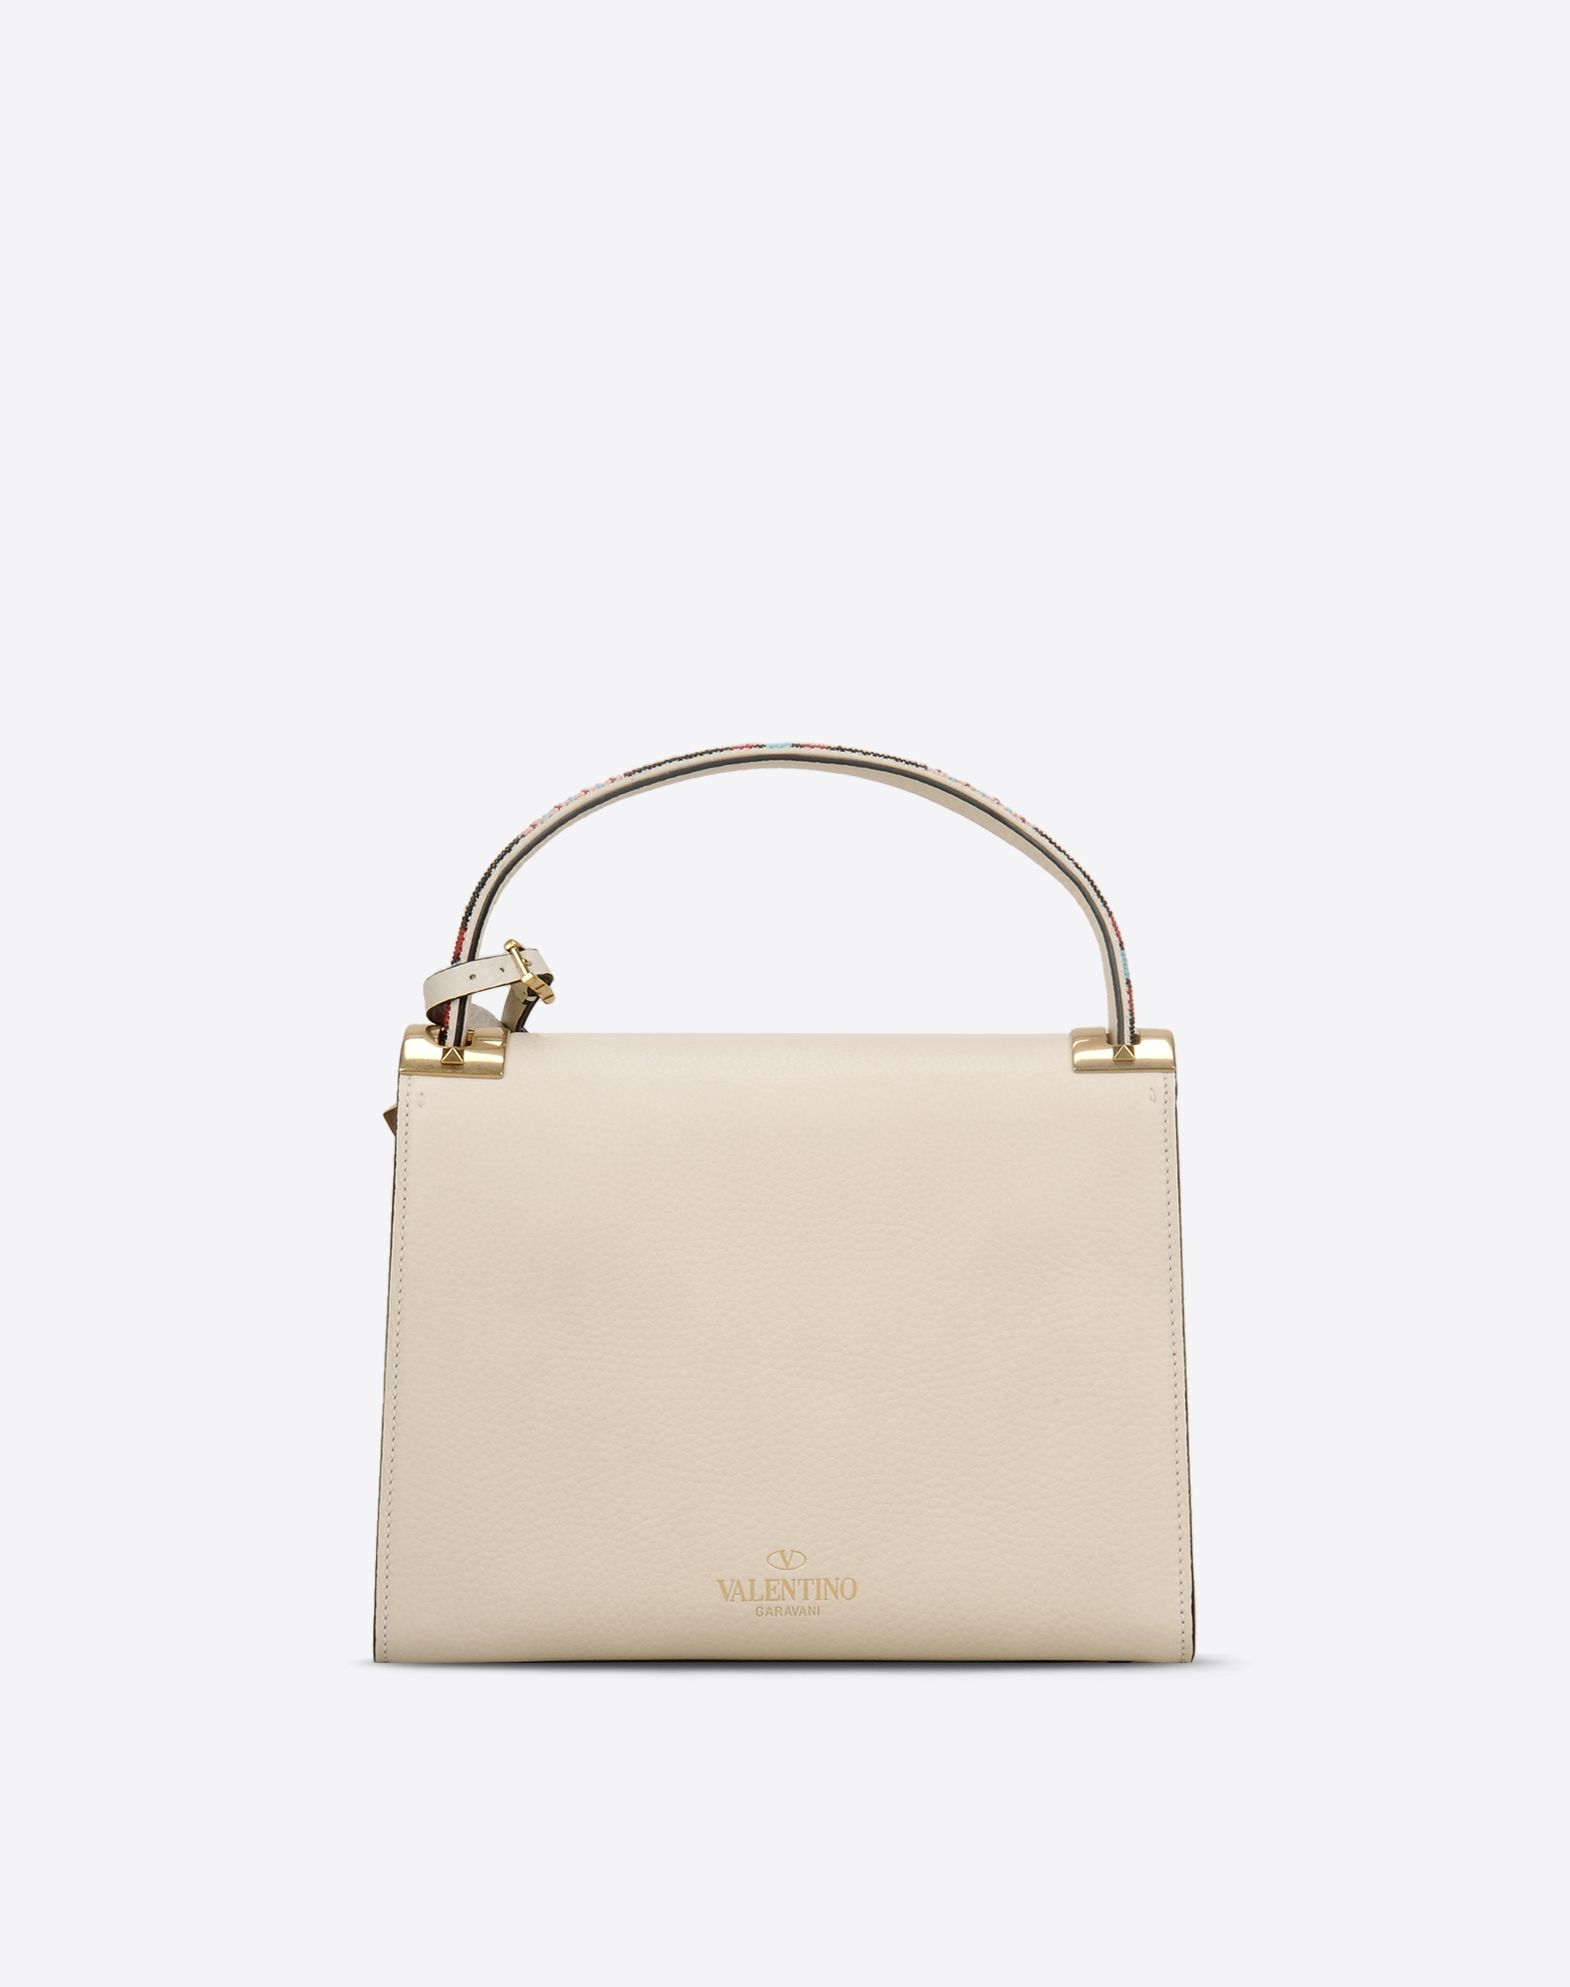 VALENTINO Textured leather Beaded detailing Logo Solid colour Magnetic closure Removable shoulder strap  45301930ln